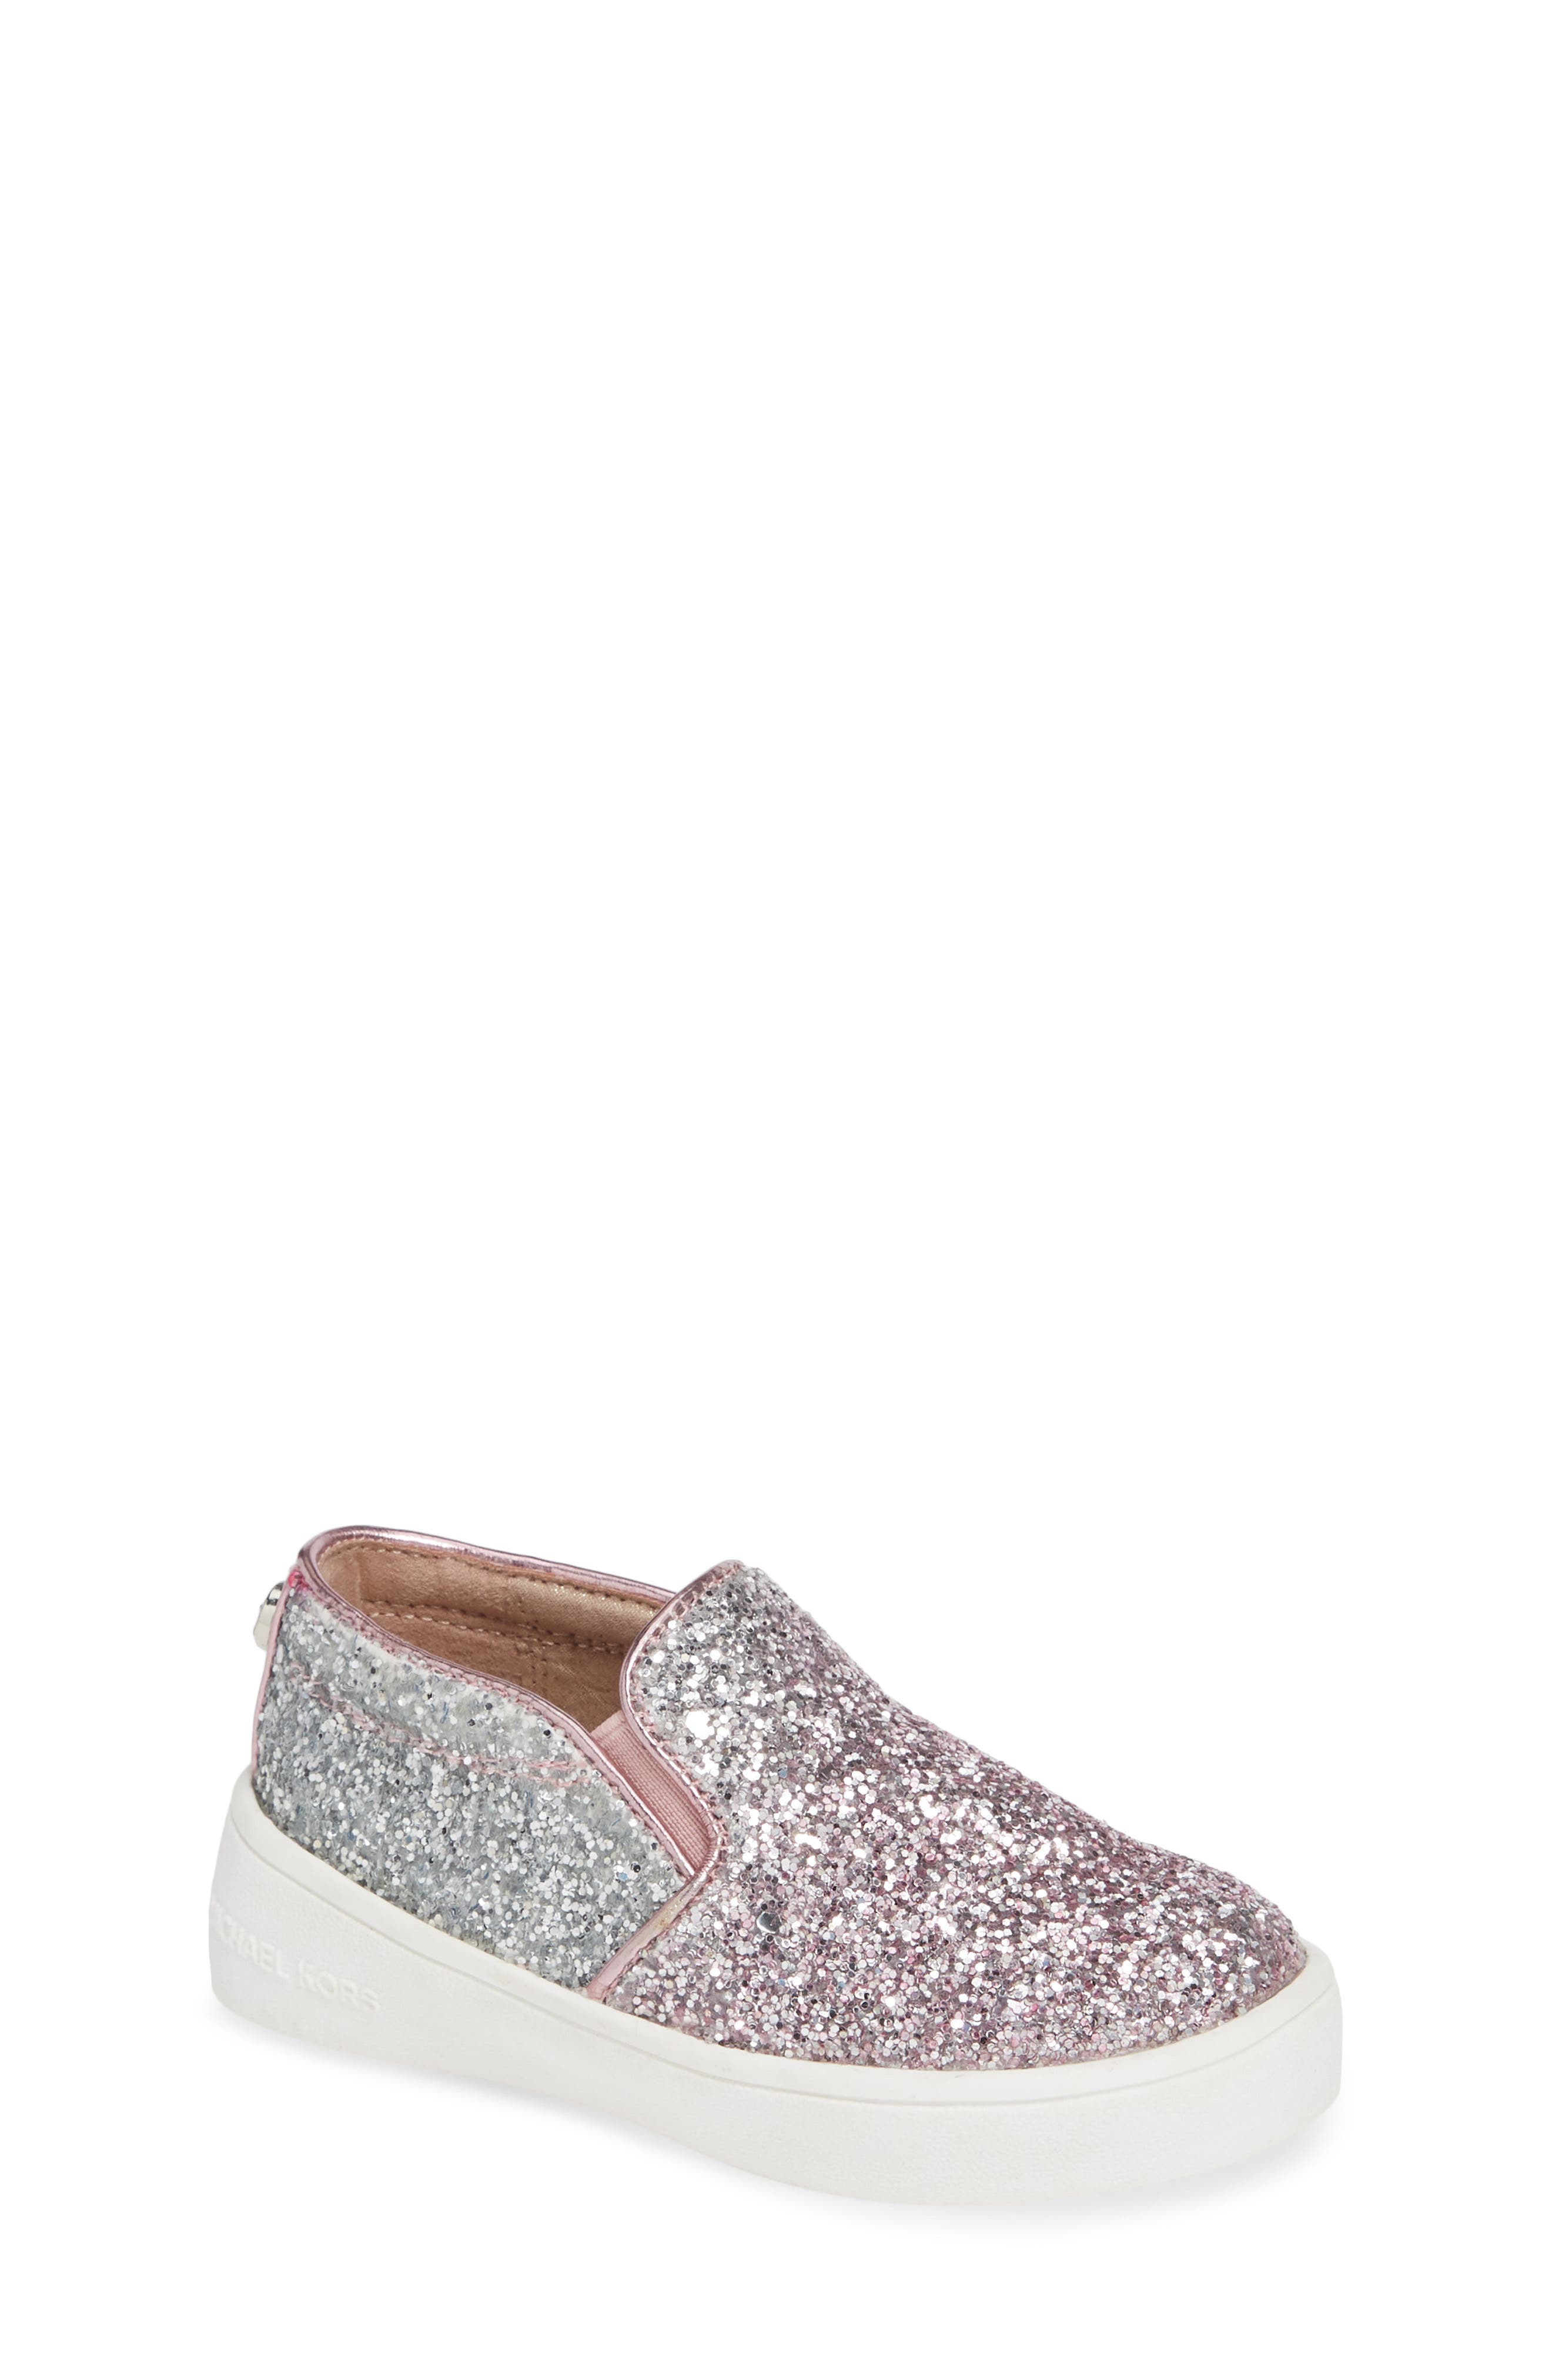 Ivy Ombré Glitter Slip-On Sneaker,                             Main thumbnail 1, color,                             PINK SILVER